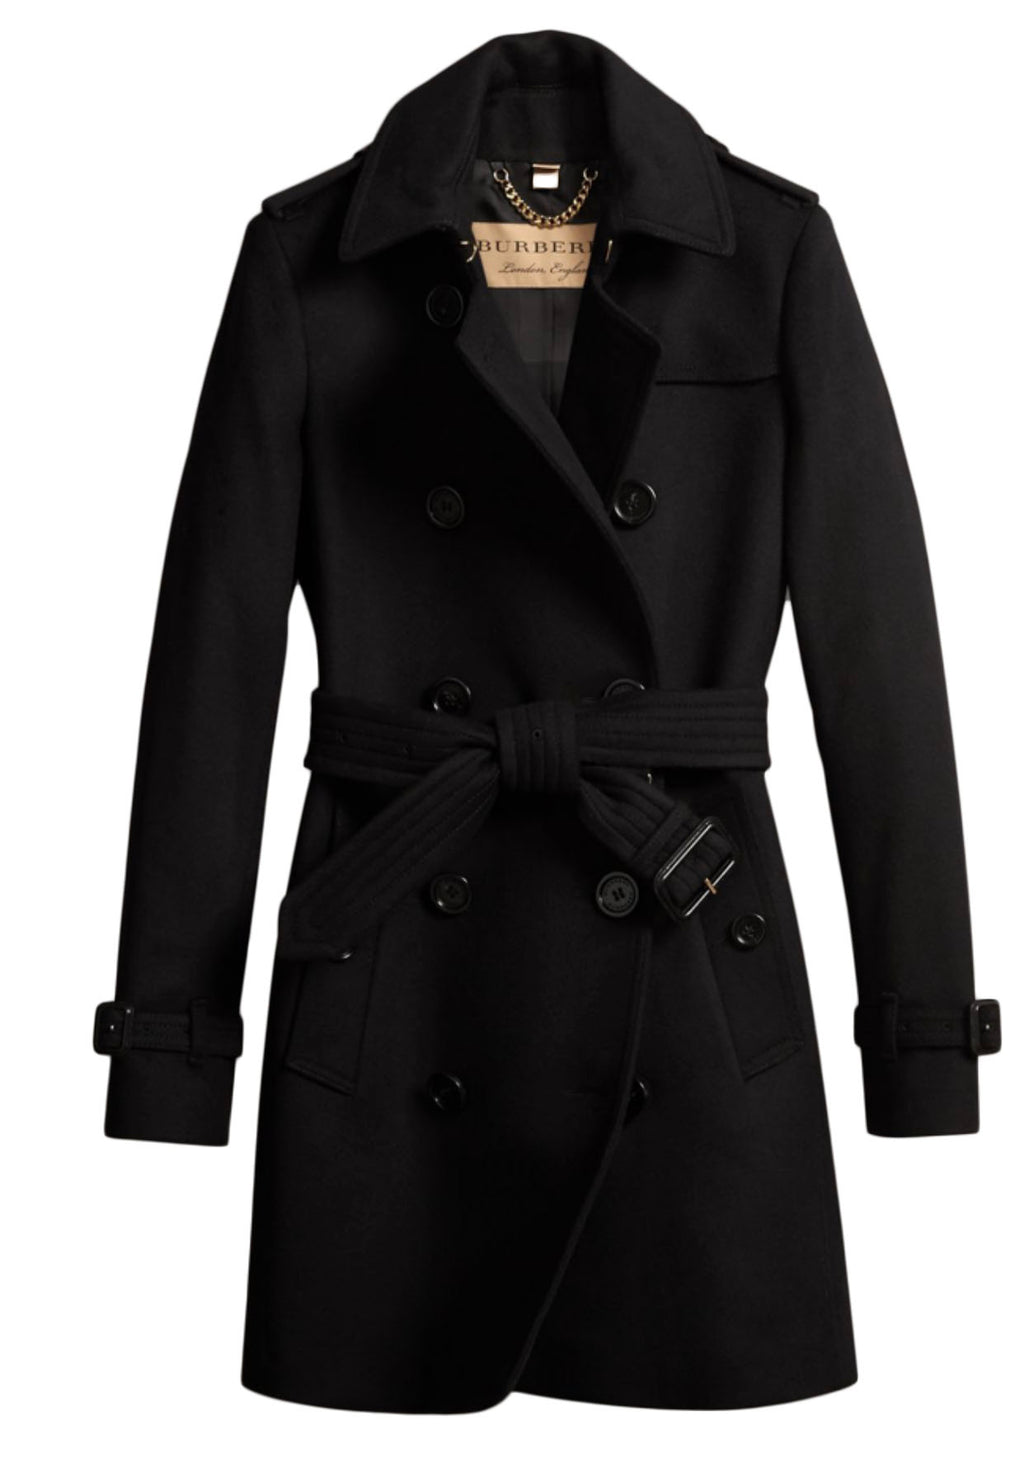 Burberry Virgin Wool and Cashmere Black Timeless Trench Coat Size 42 (EU)